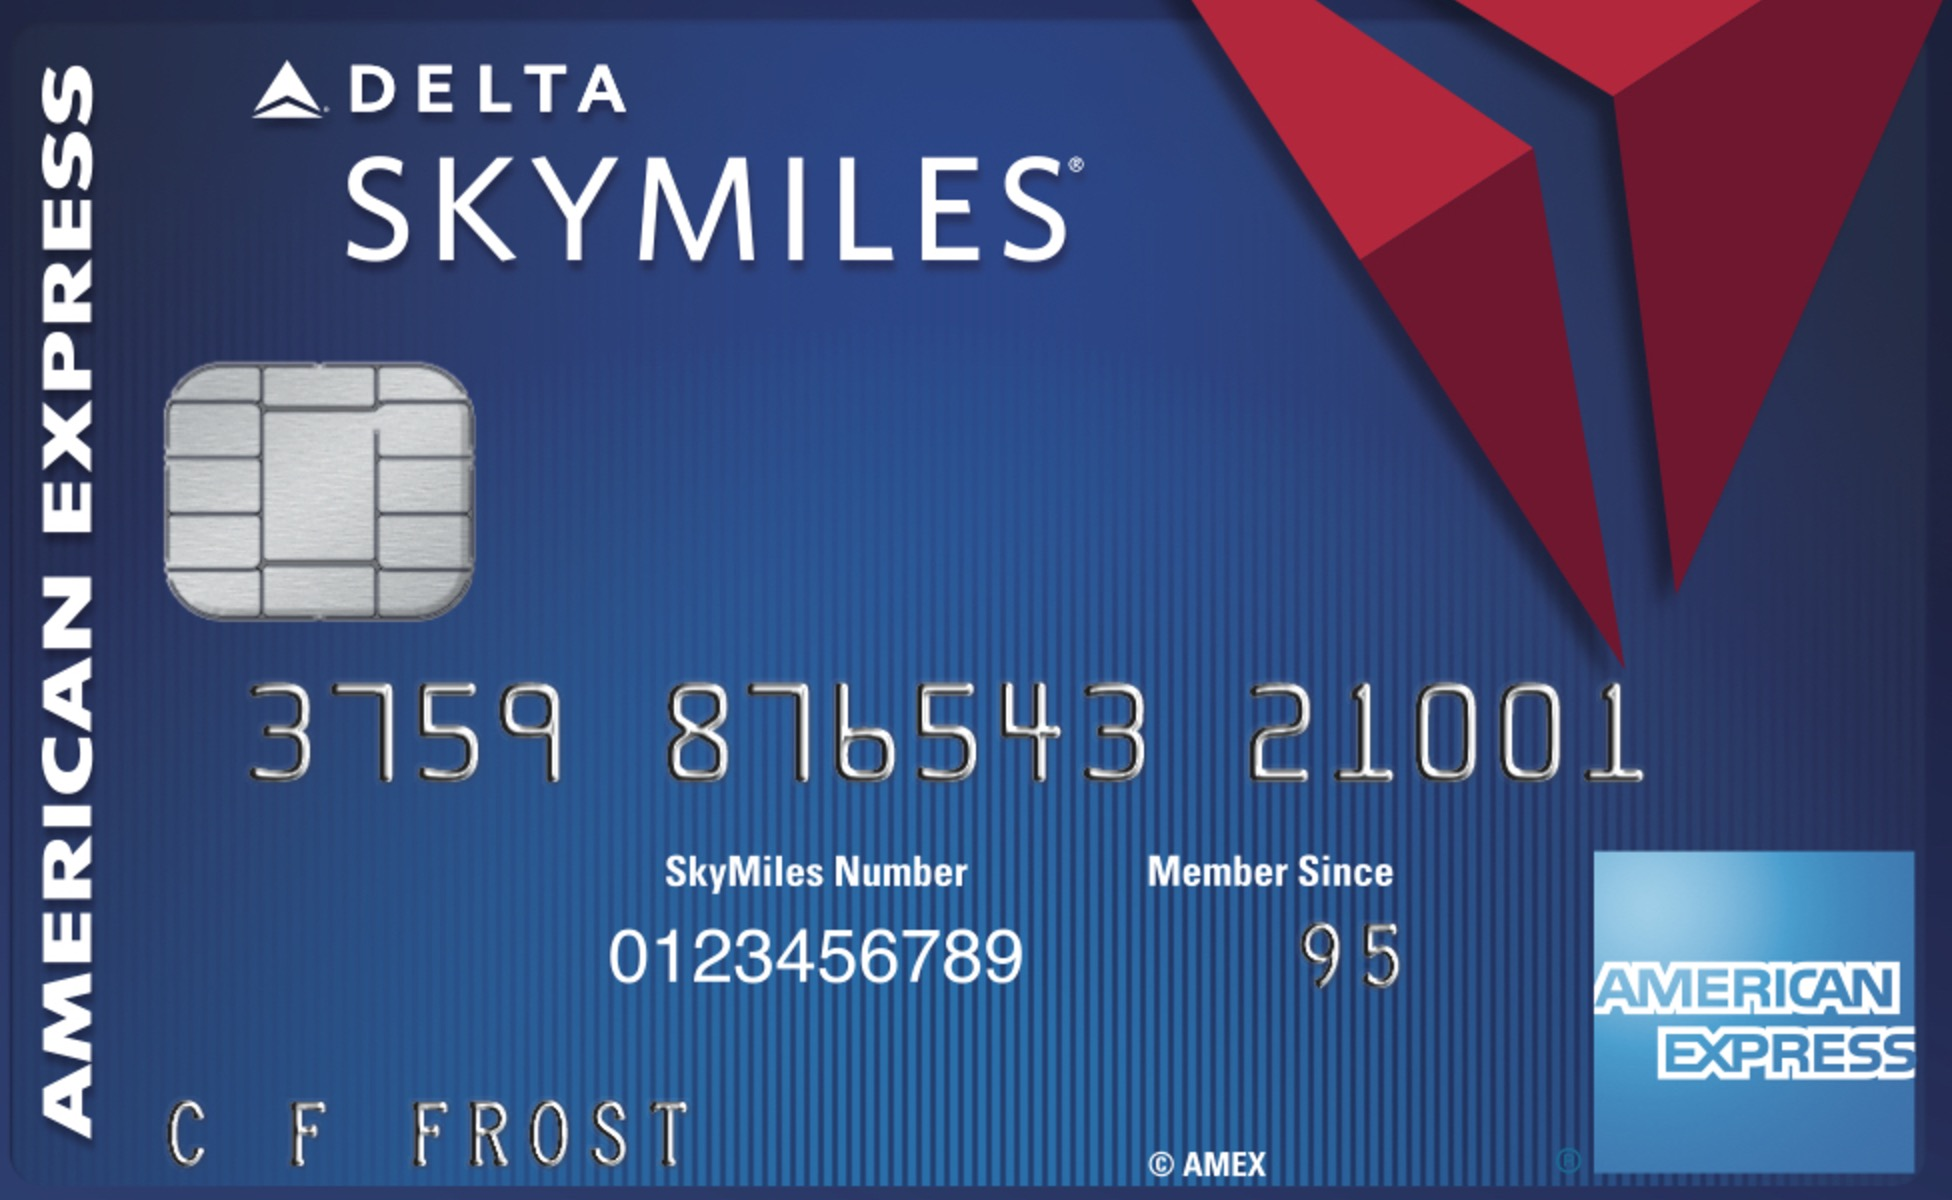 Delta Miles Use For Car Rental